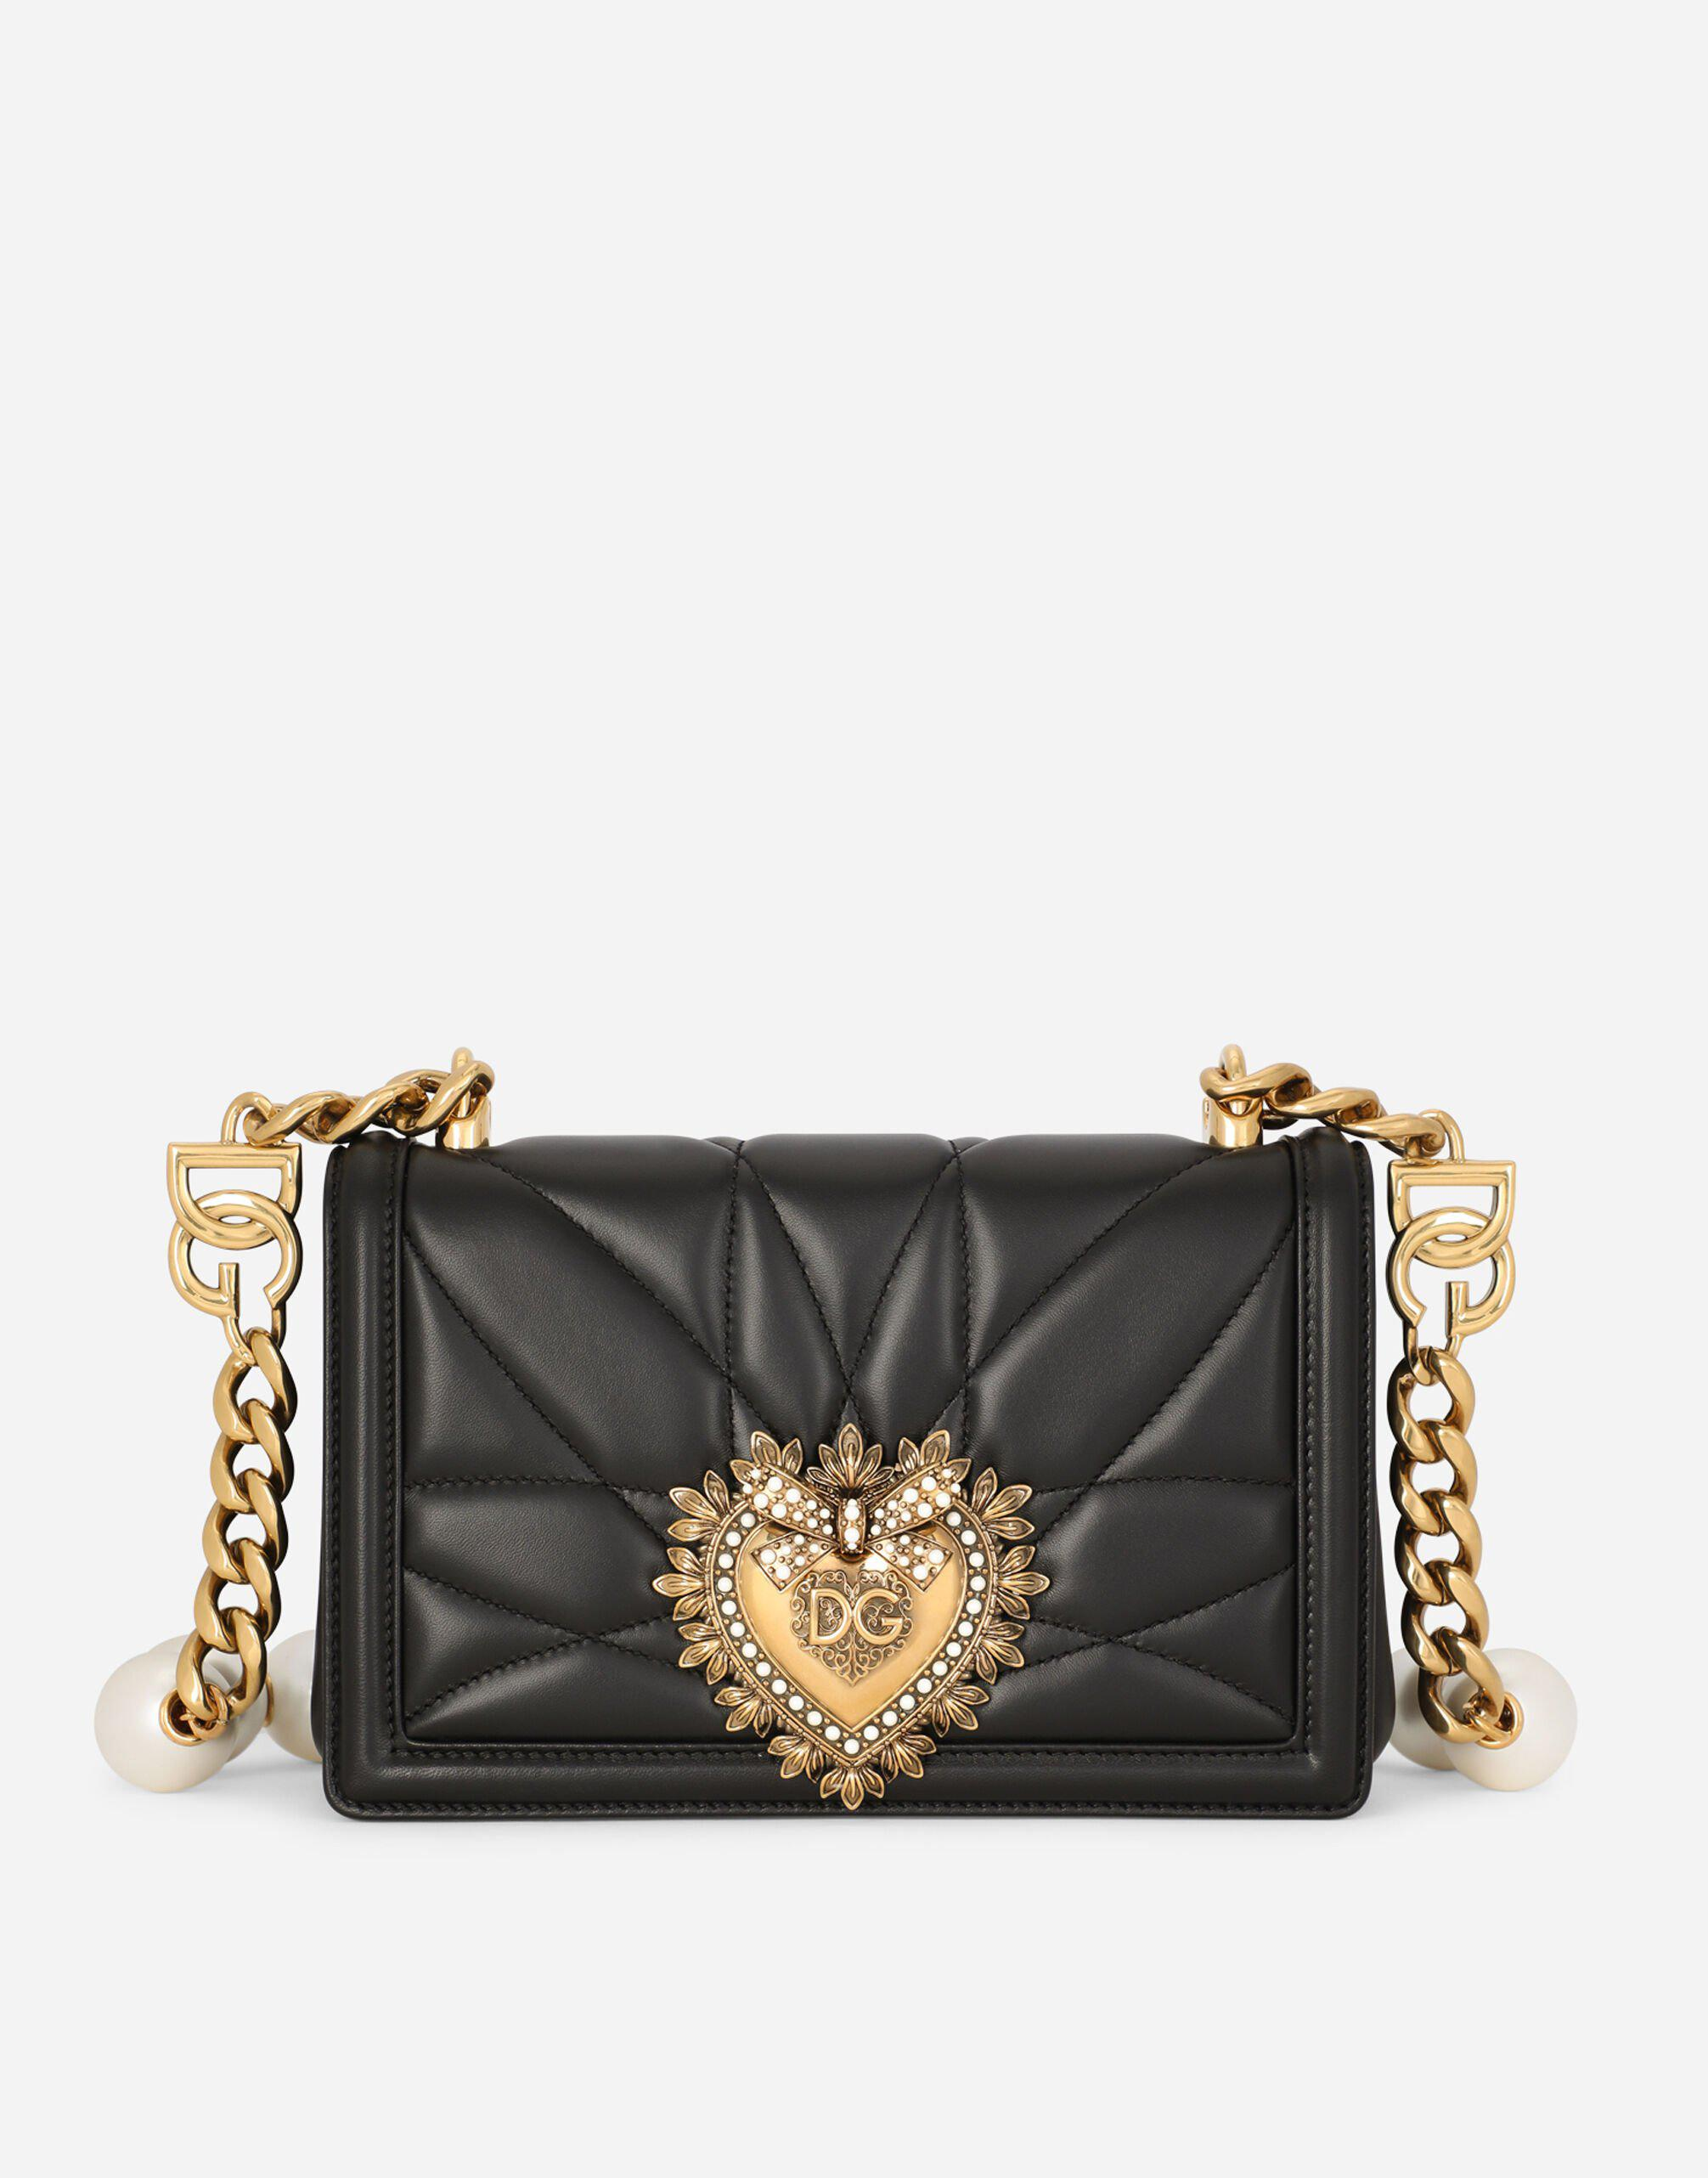 Medium Devotion Bag in quilted nappa leather with bejeweled strap